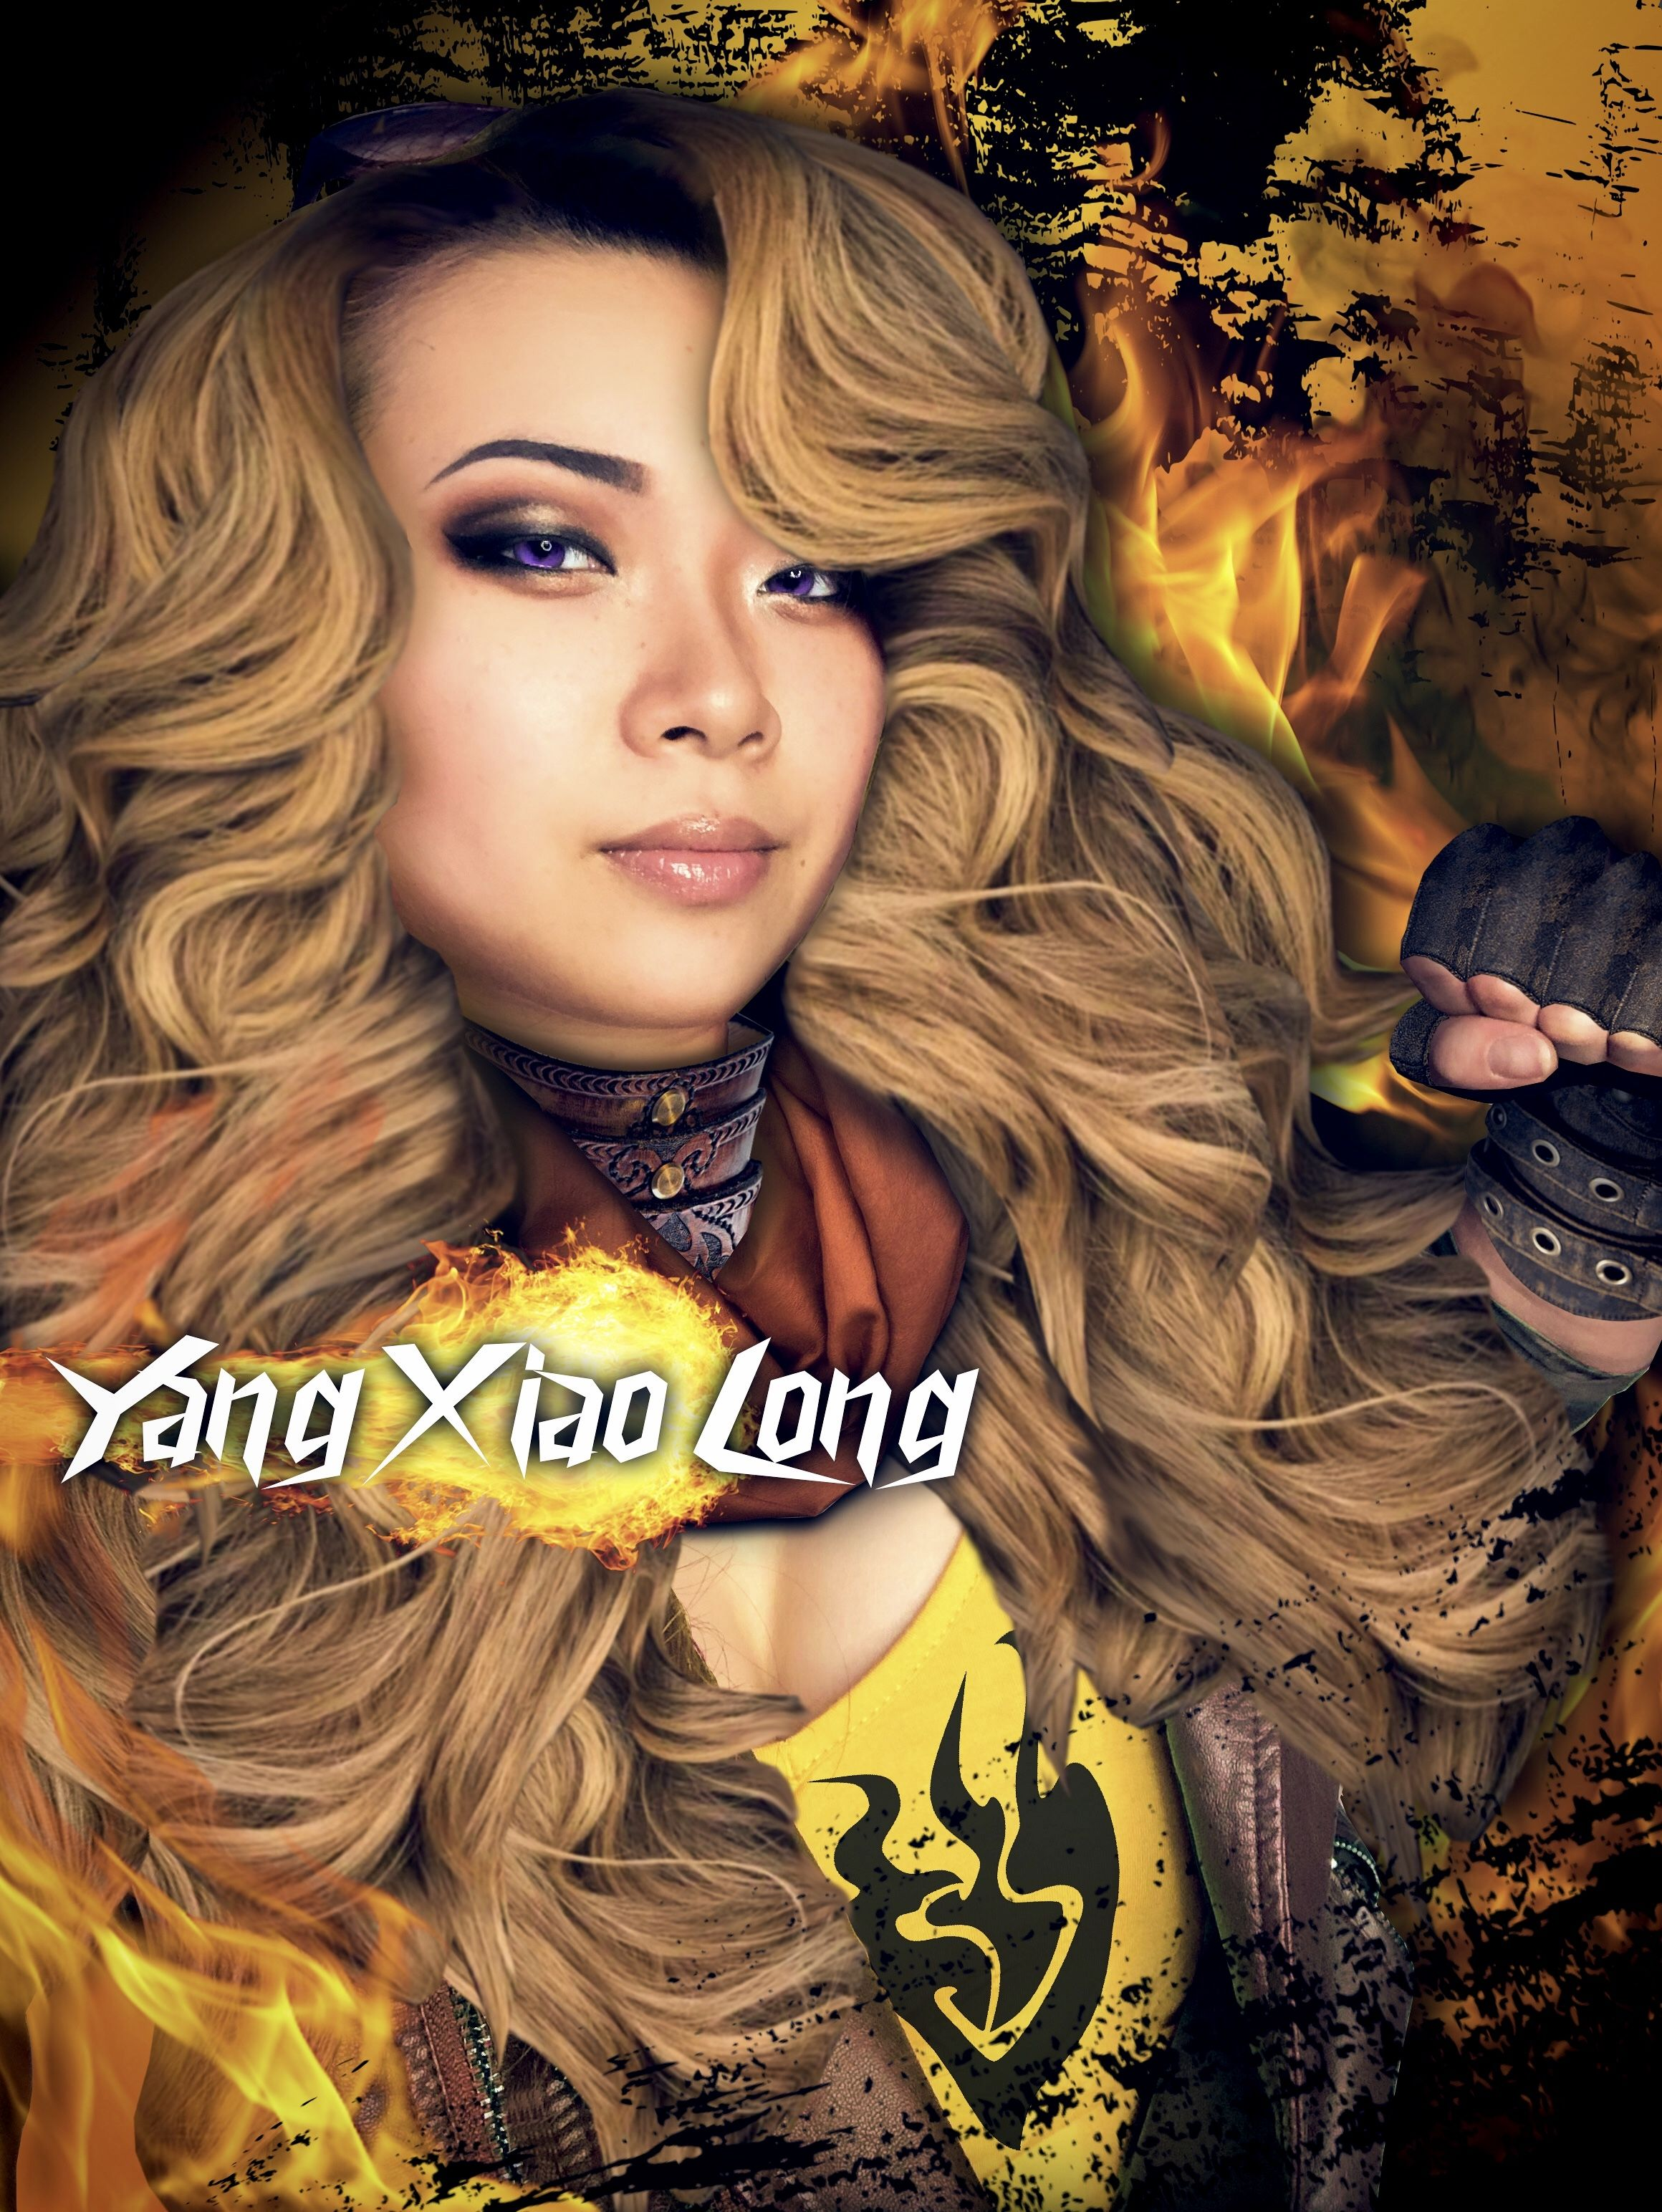 Yang Xiao Long anime cosplay from RWBY in 2020 Cosplay